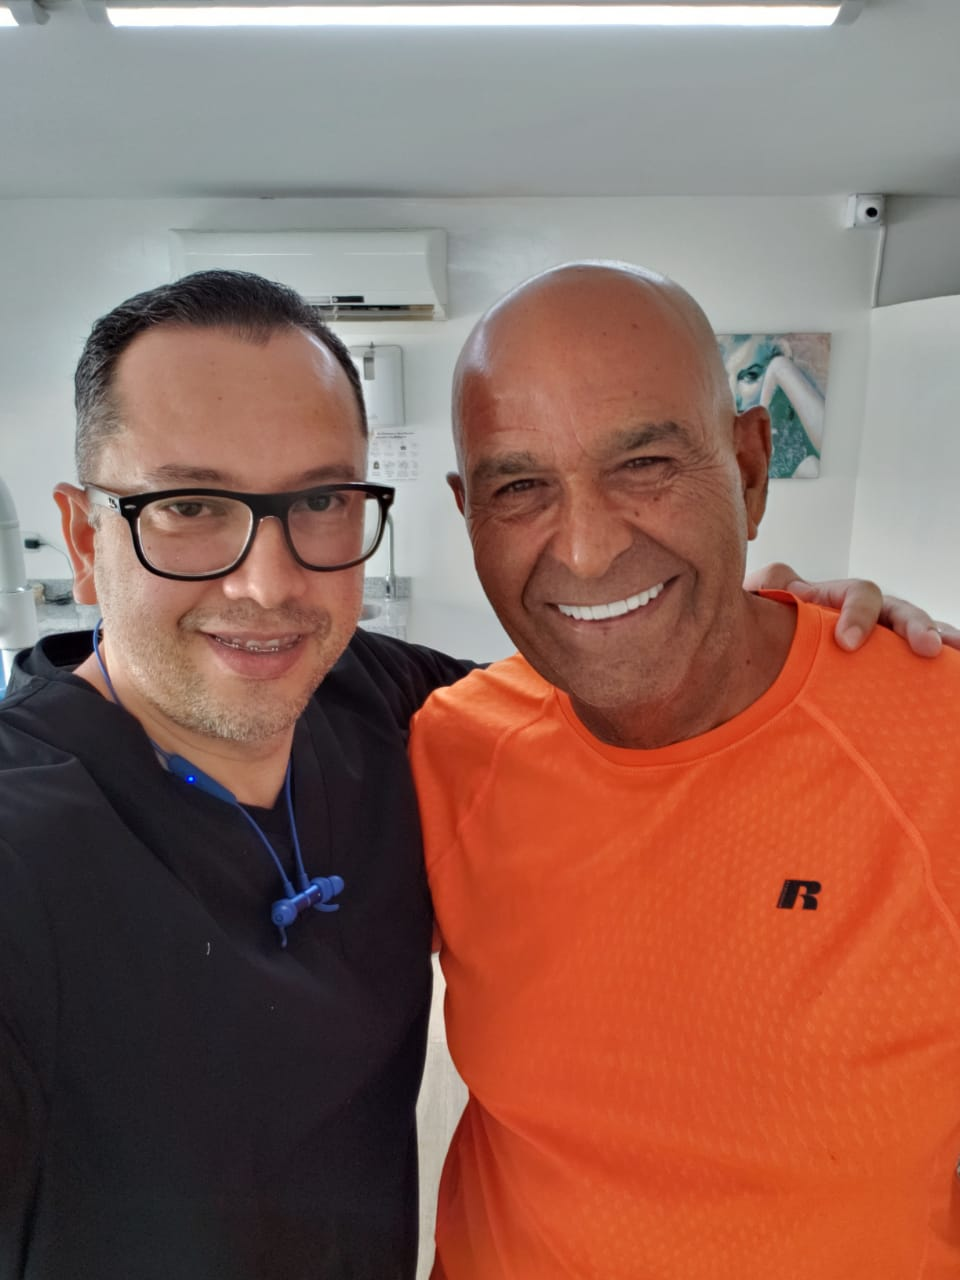 Dr. Julio Oliver - 4 Reasons Why Cartagena, Colombia Is Best For Cosmetic Dentistry